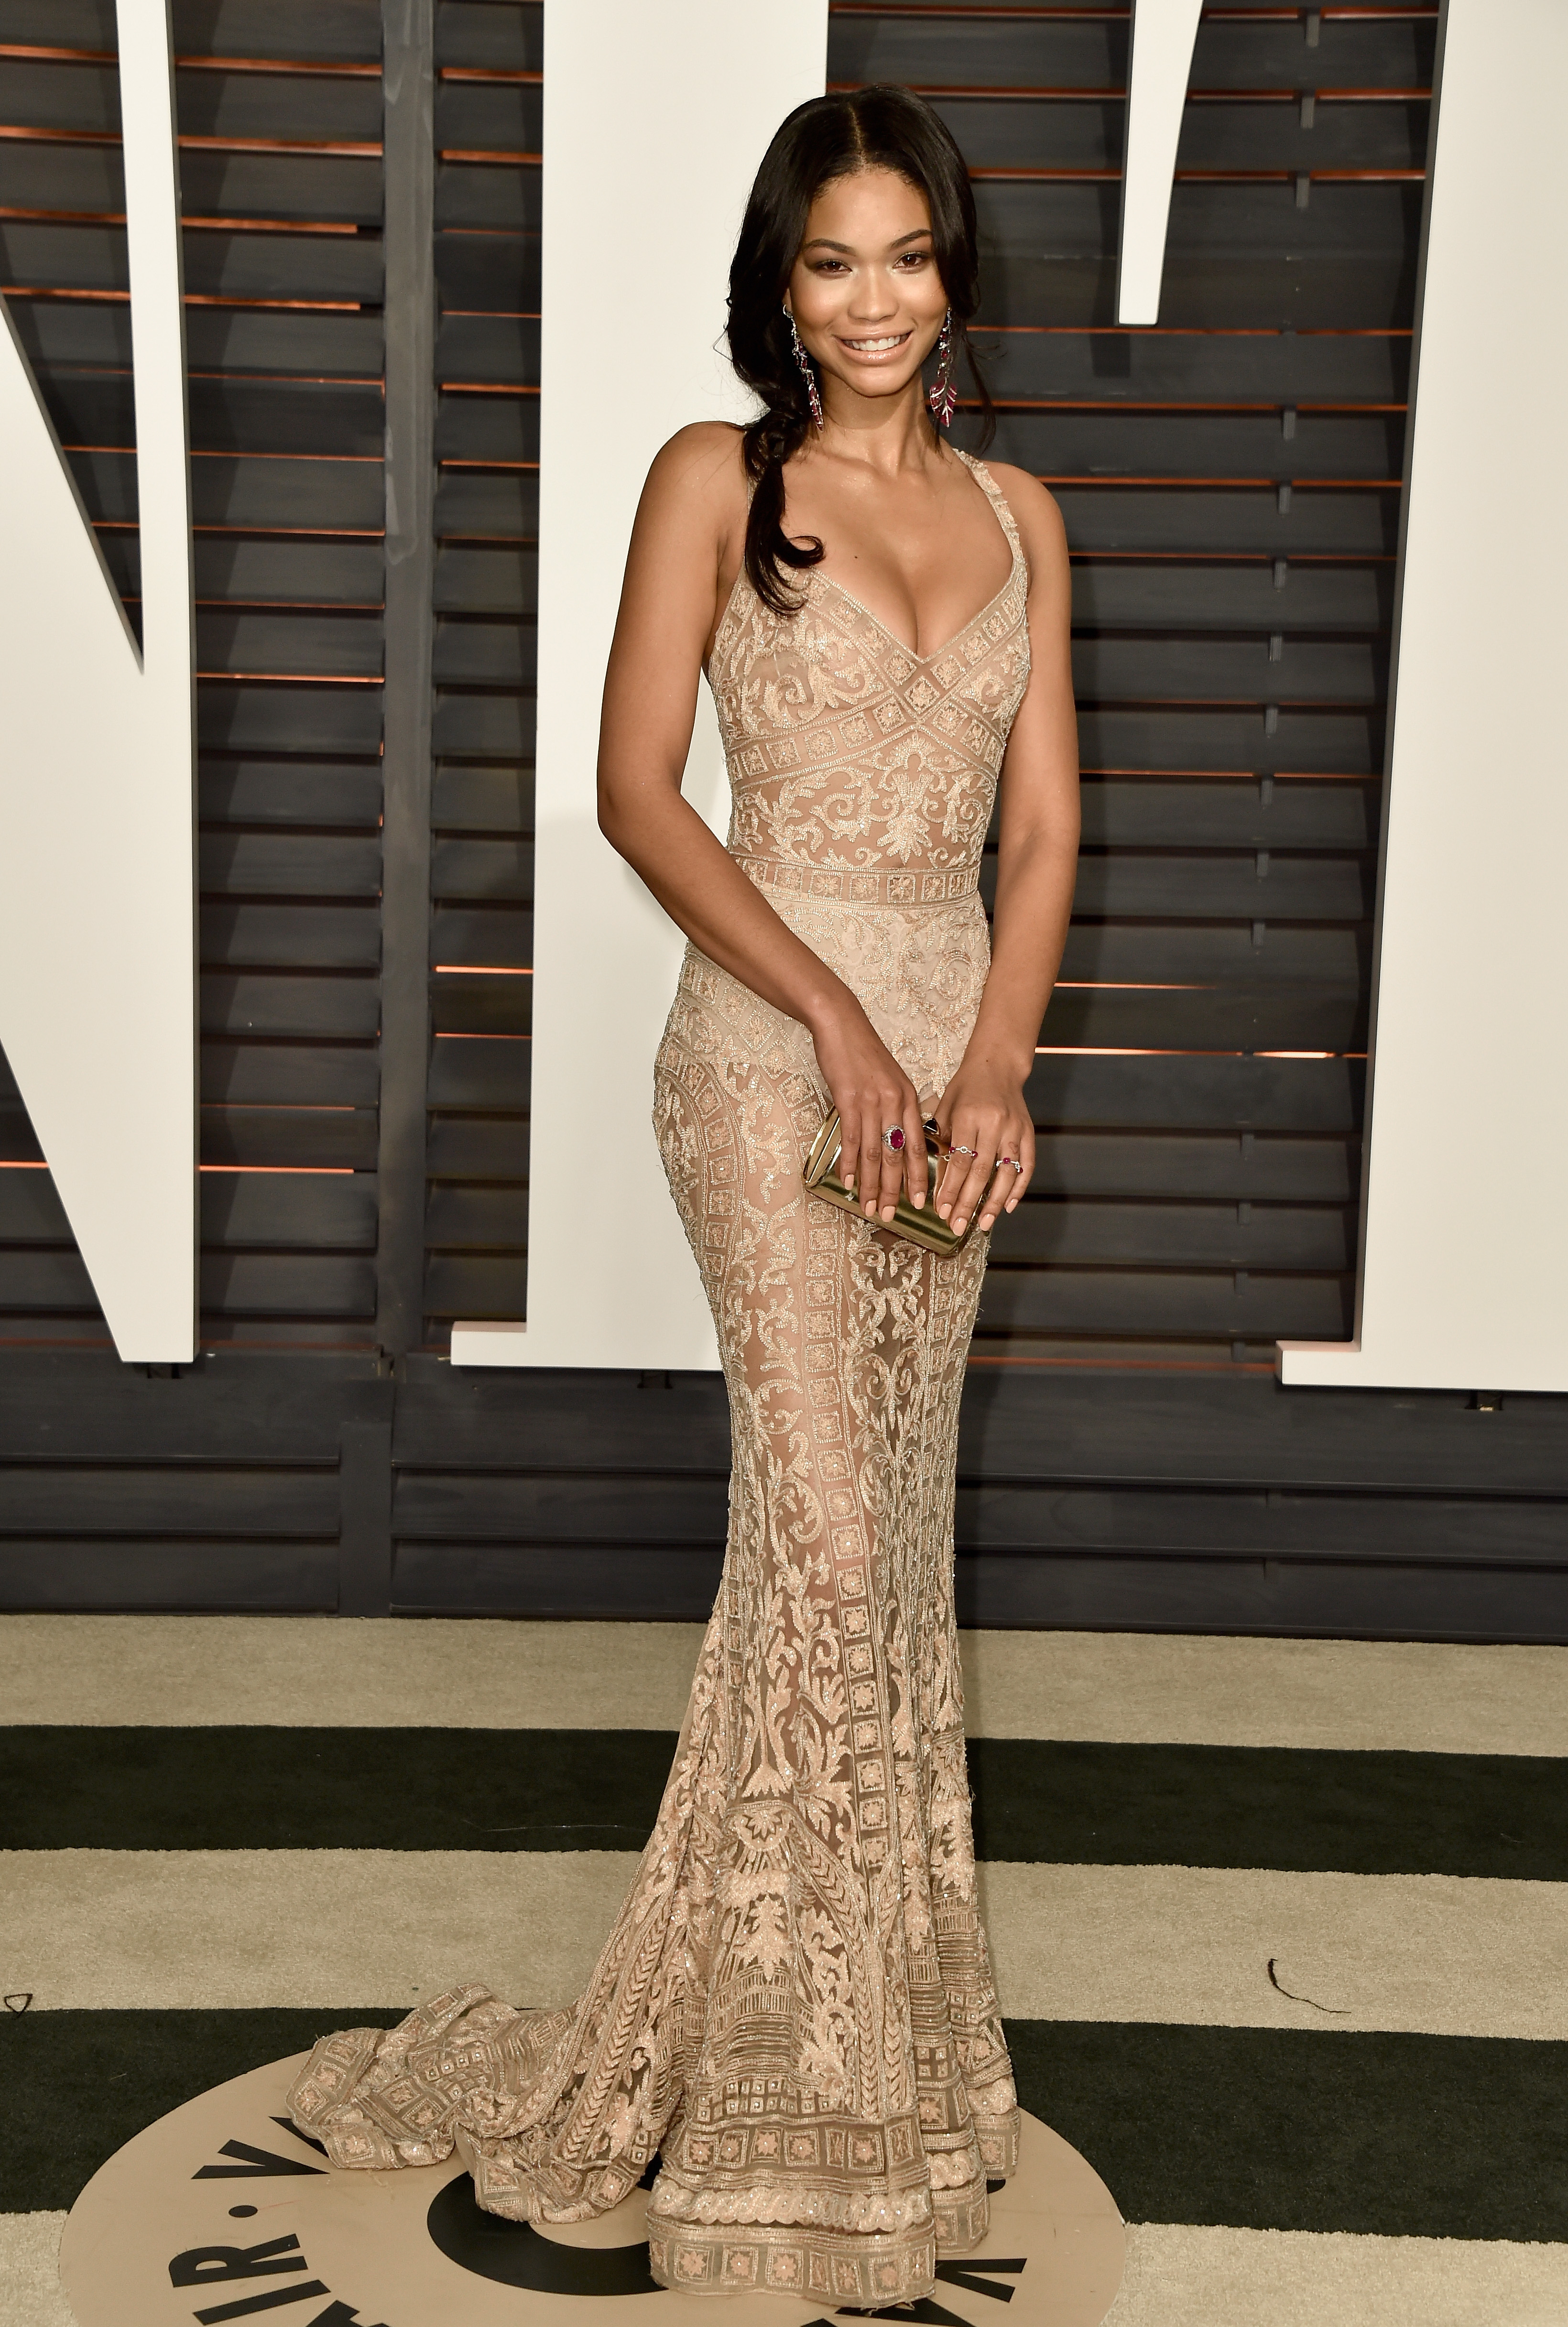 2015 Vanity Fair Oscar Party Dresses Were As Good As (If Not Better ...